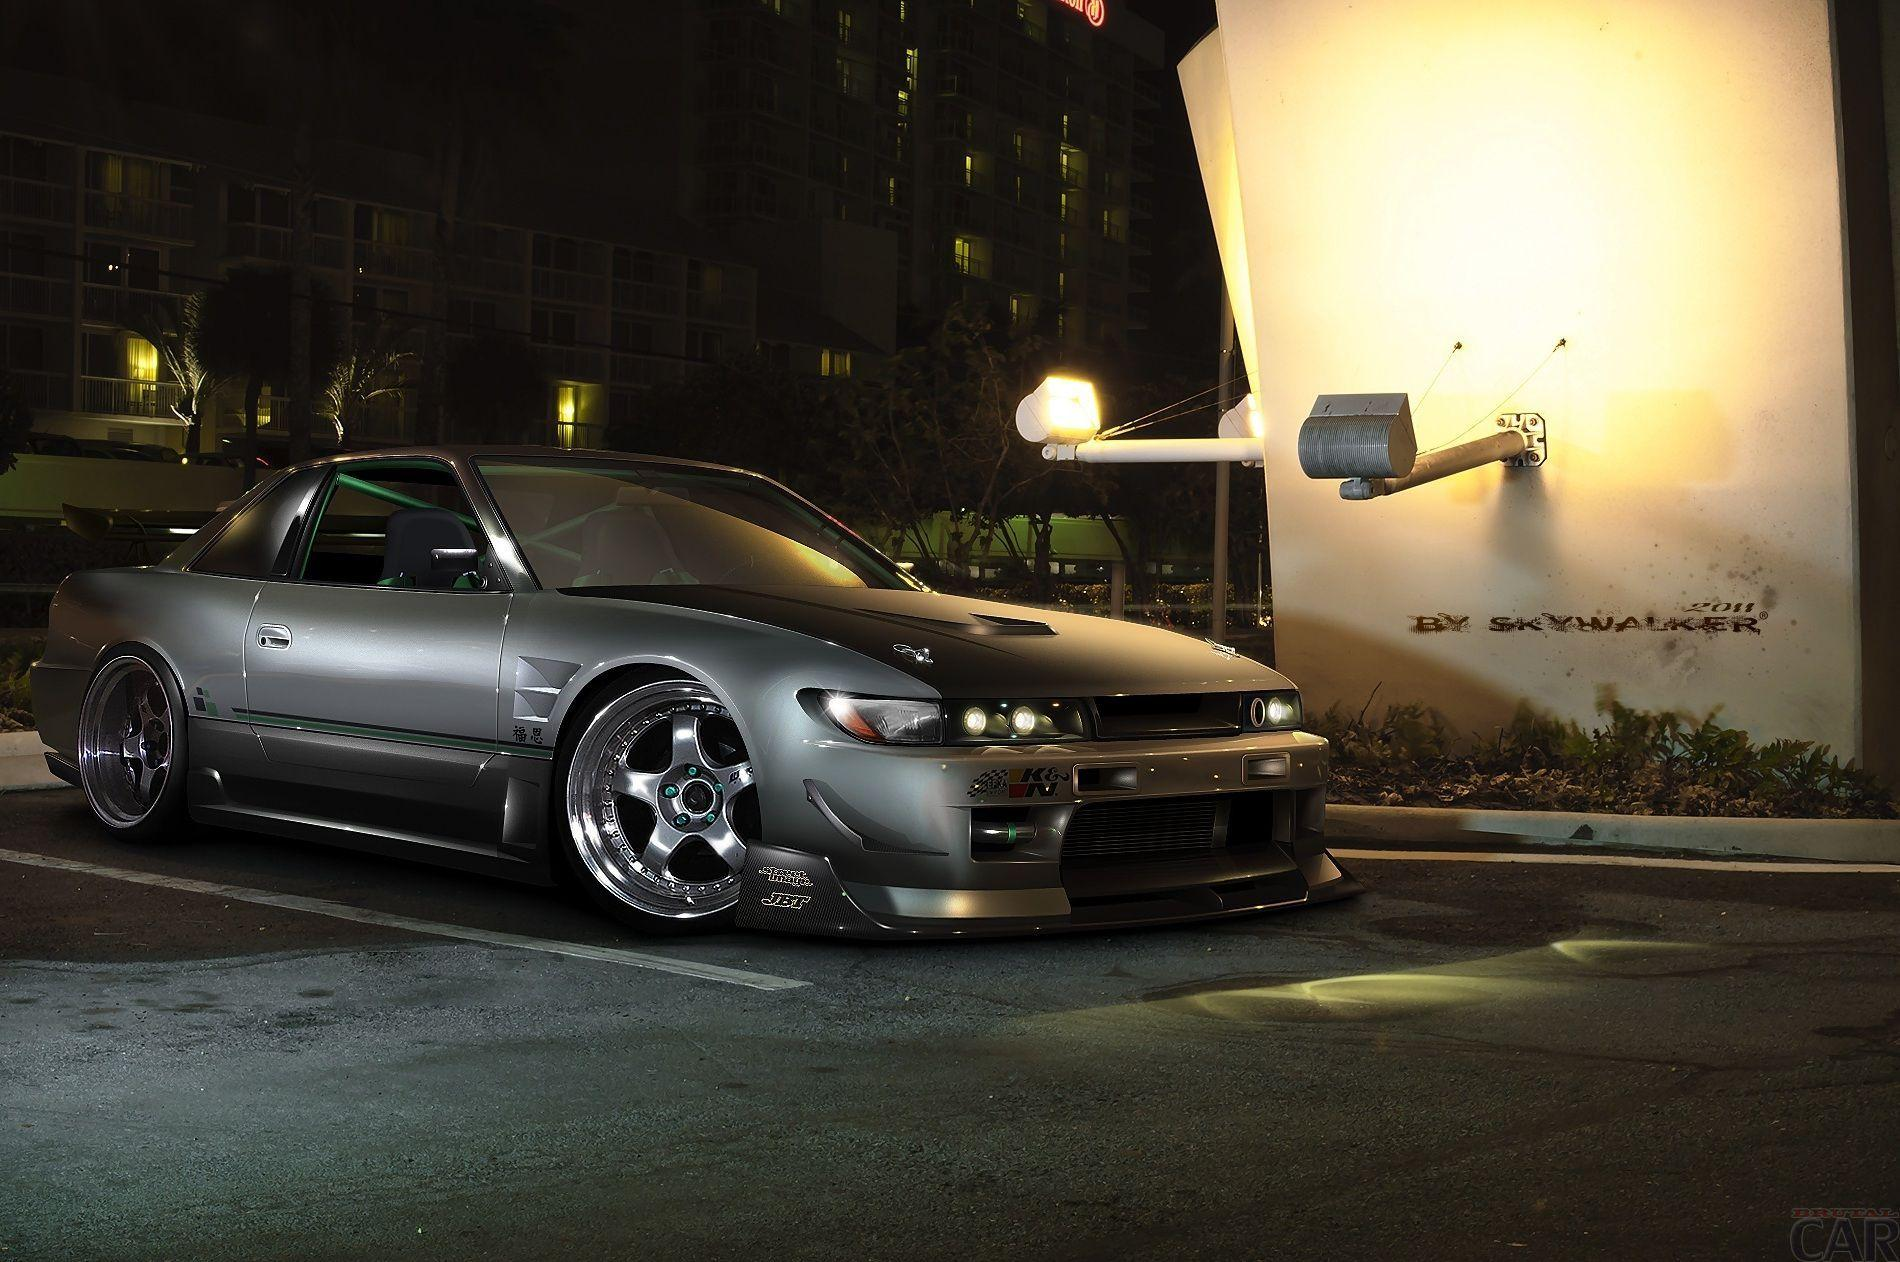 NLR – Nissan Silvia Wallpapers, 43 Wallpapers of Nissan Silvia FHDQ